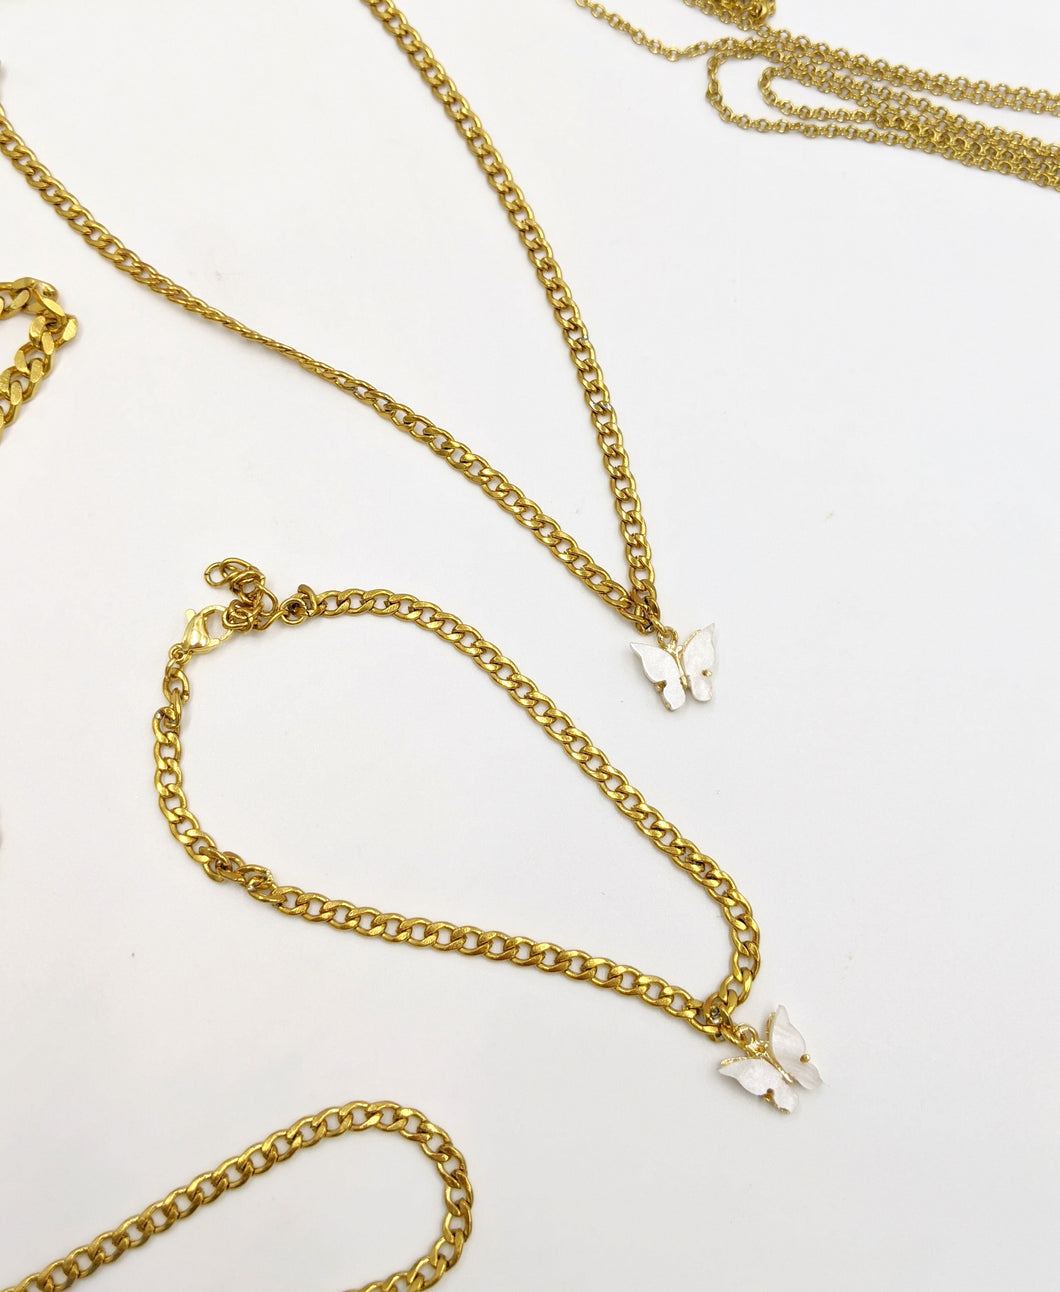 Dainty Gold Stainless Steel Cuban Link White Butterfly Choker